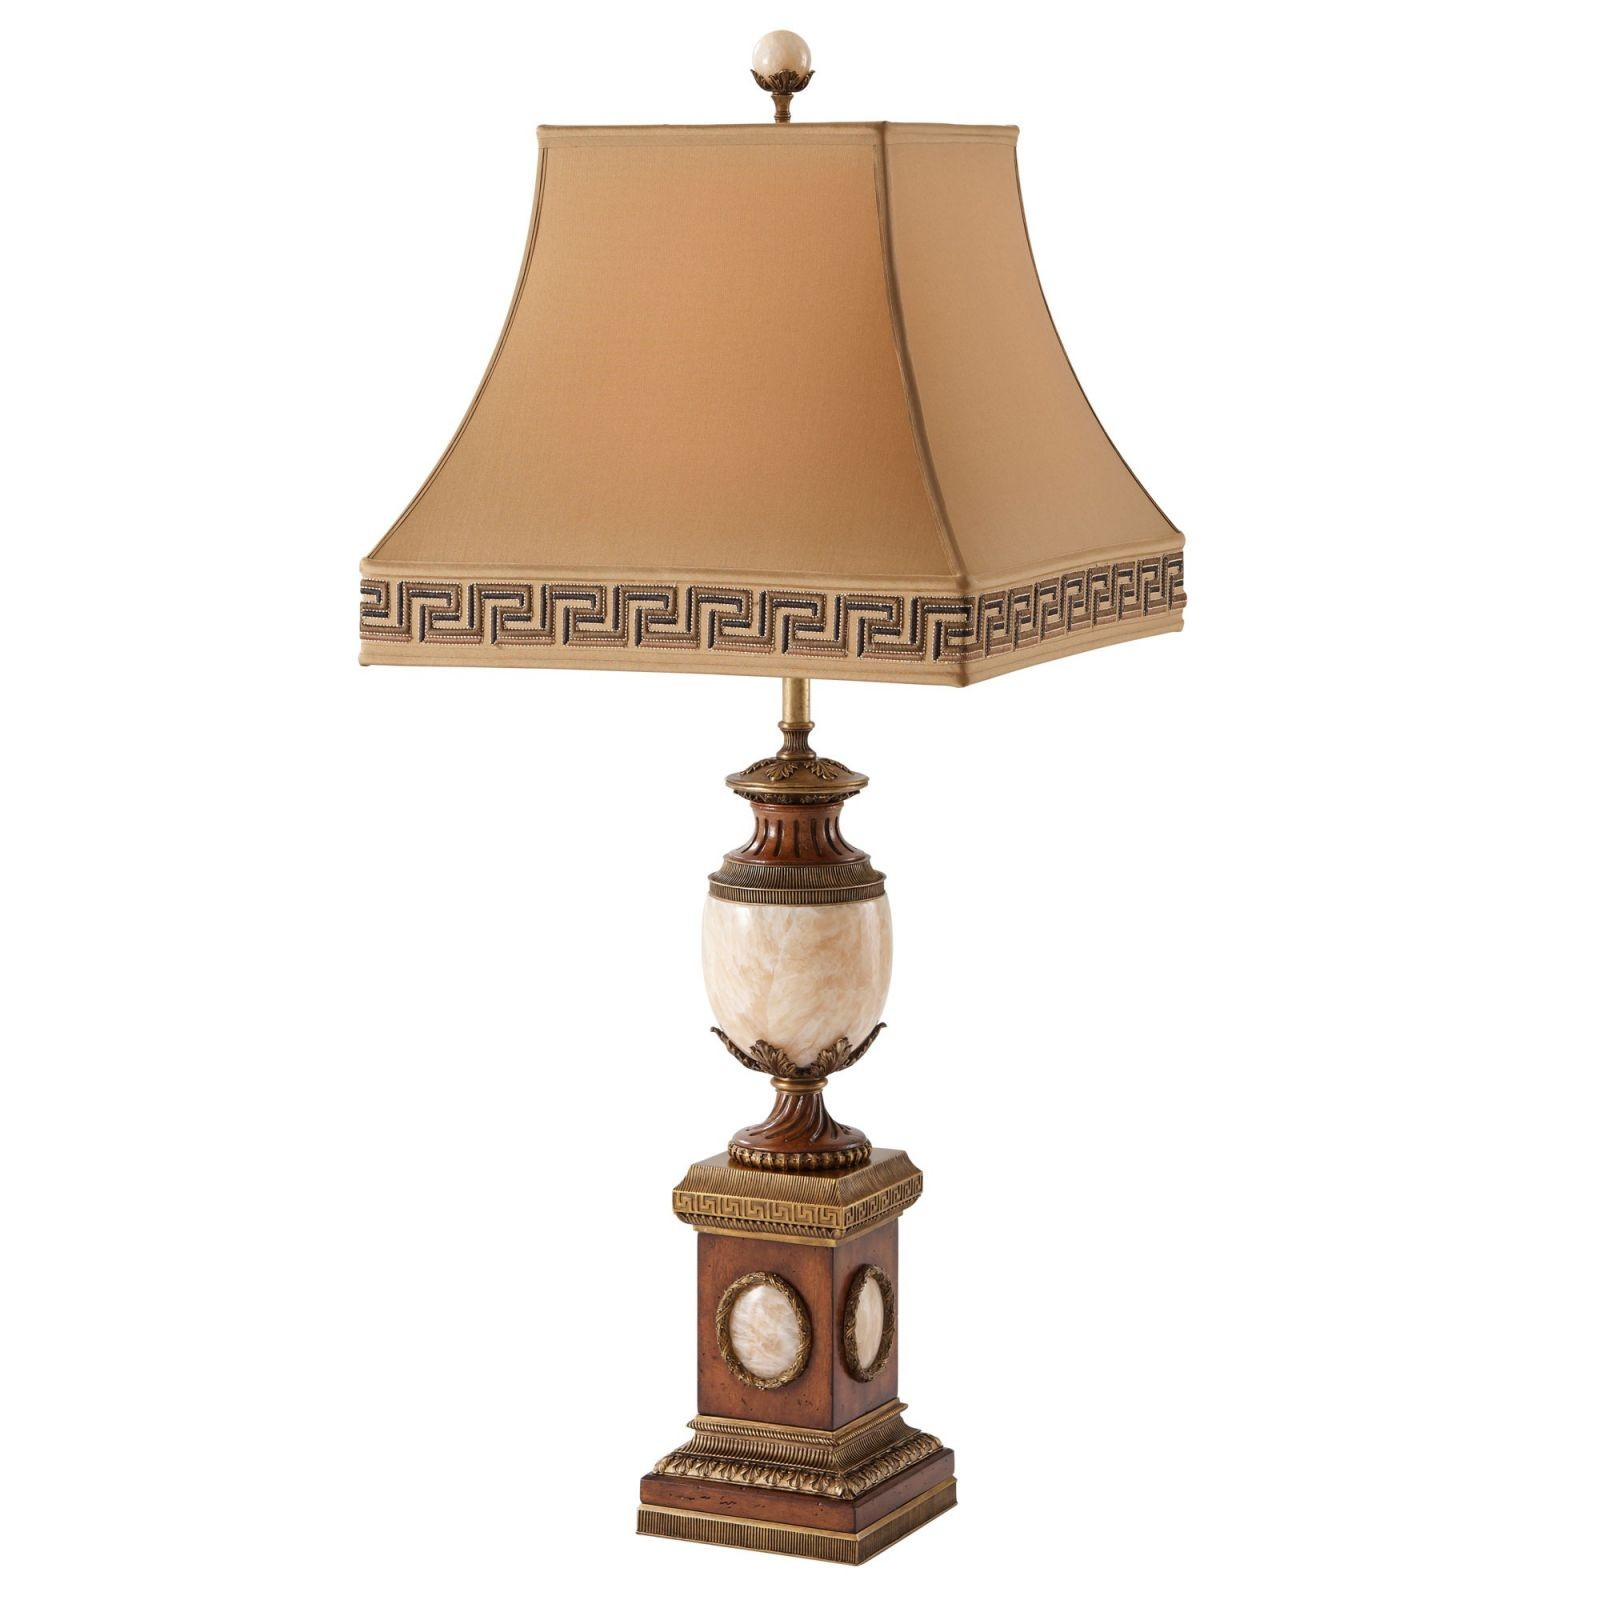 Neo-classical brass and onyx table lamp